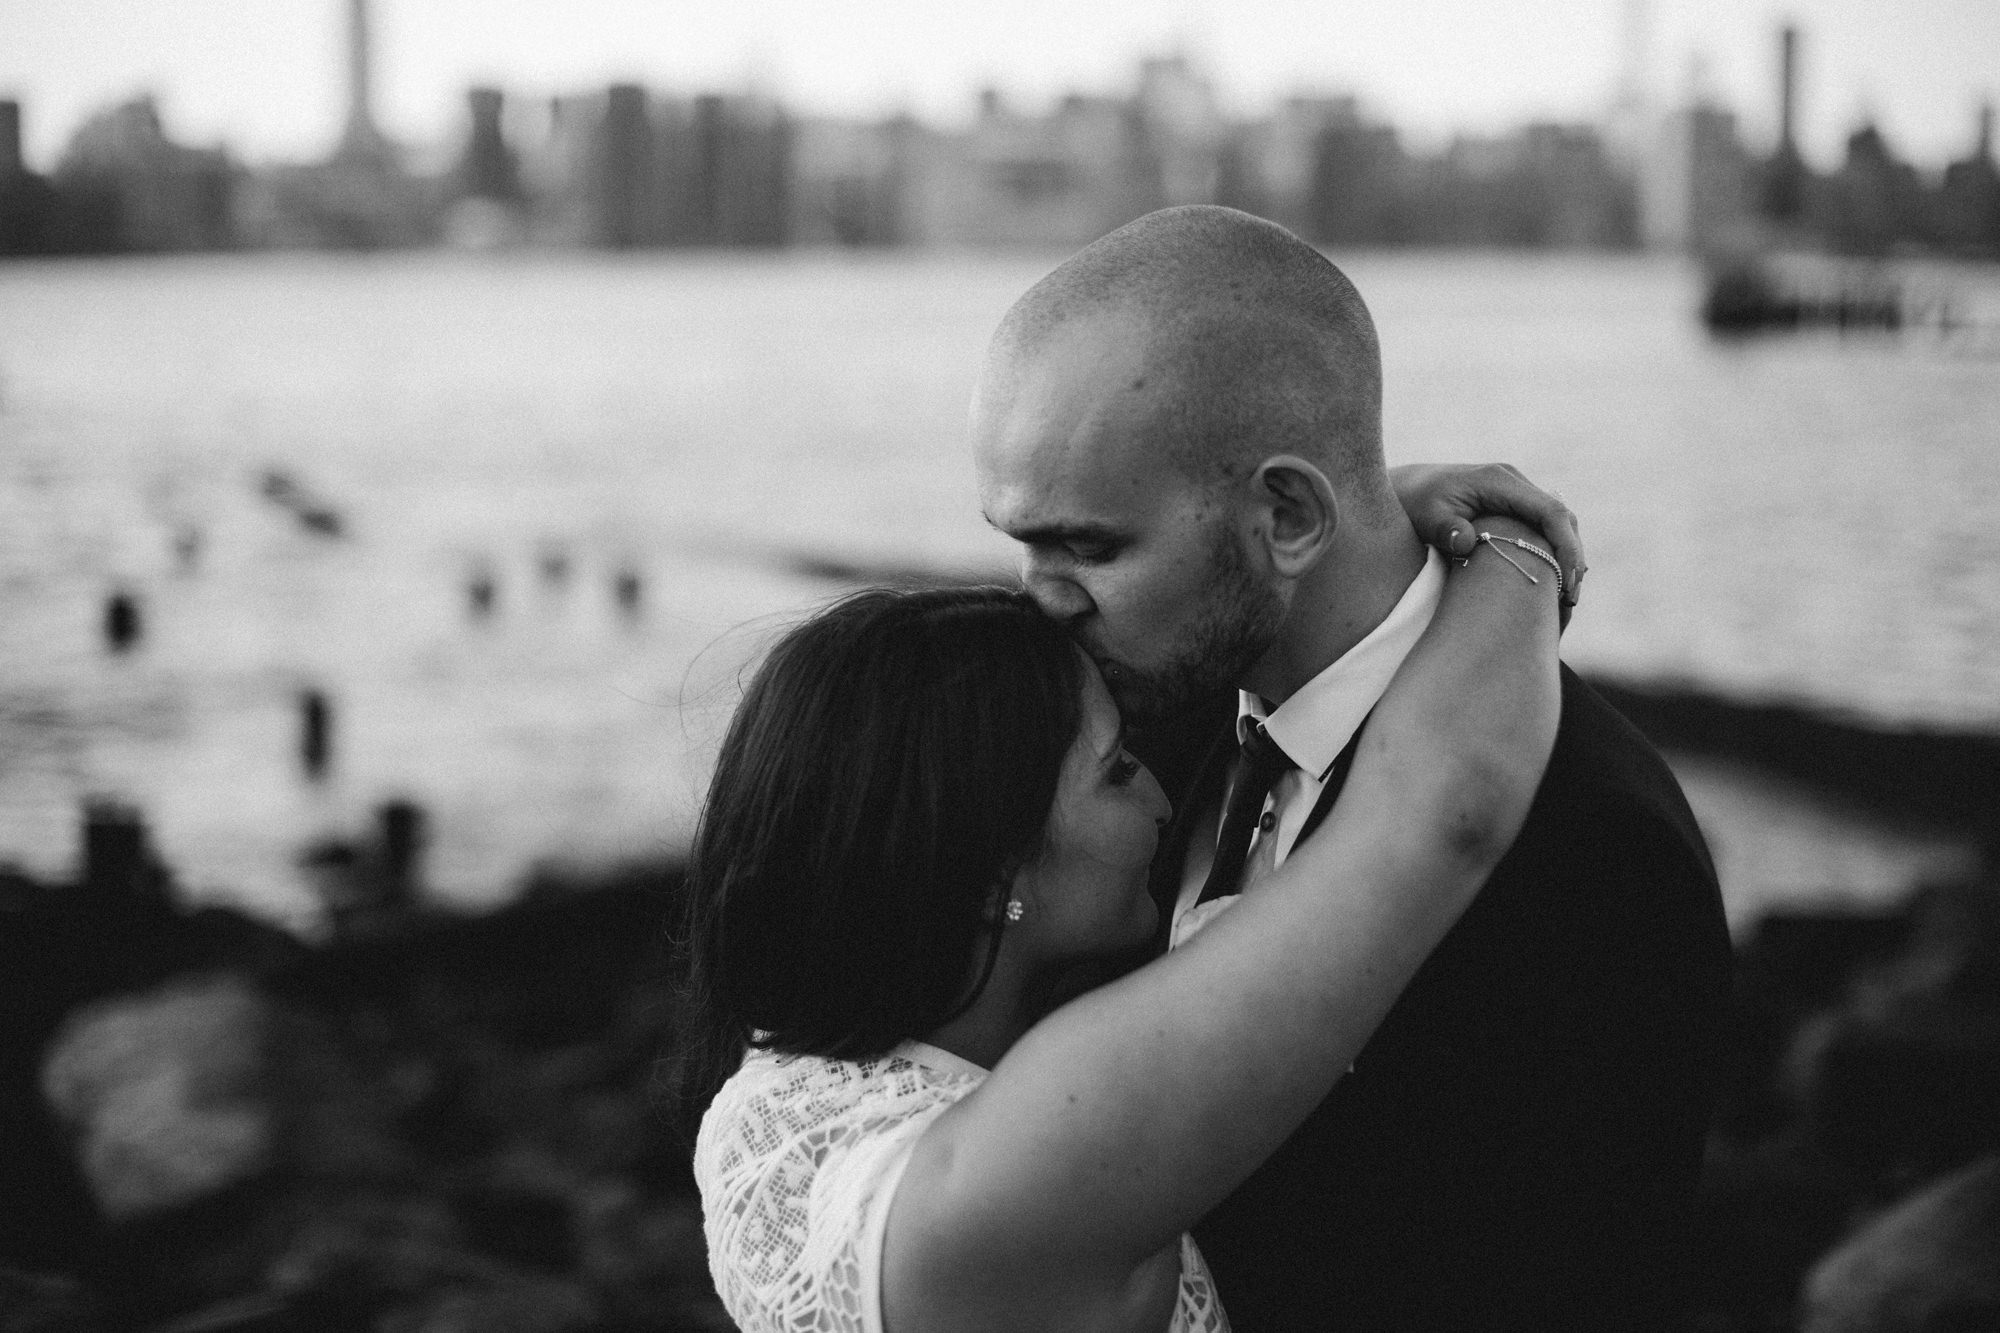 NYC_ELOPEMENT_CITYHALL_BROOKLYN_SAMMBLAKE_0054.jpg